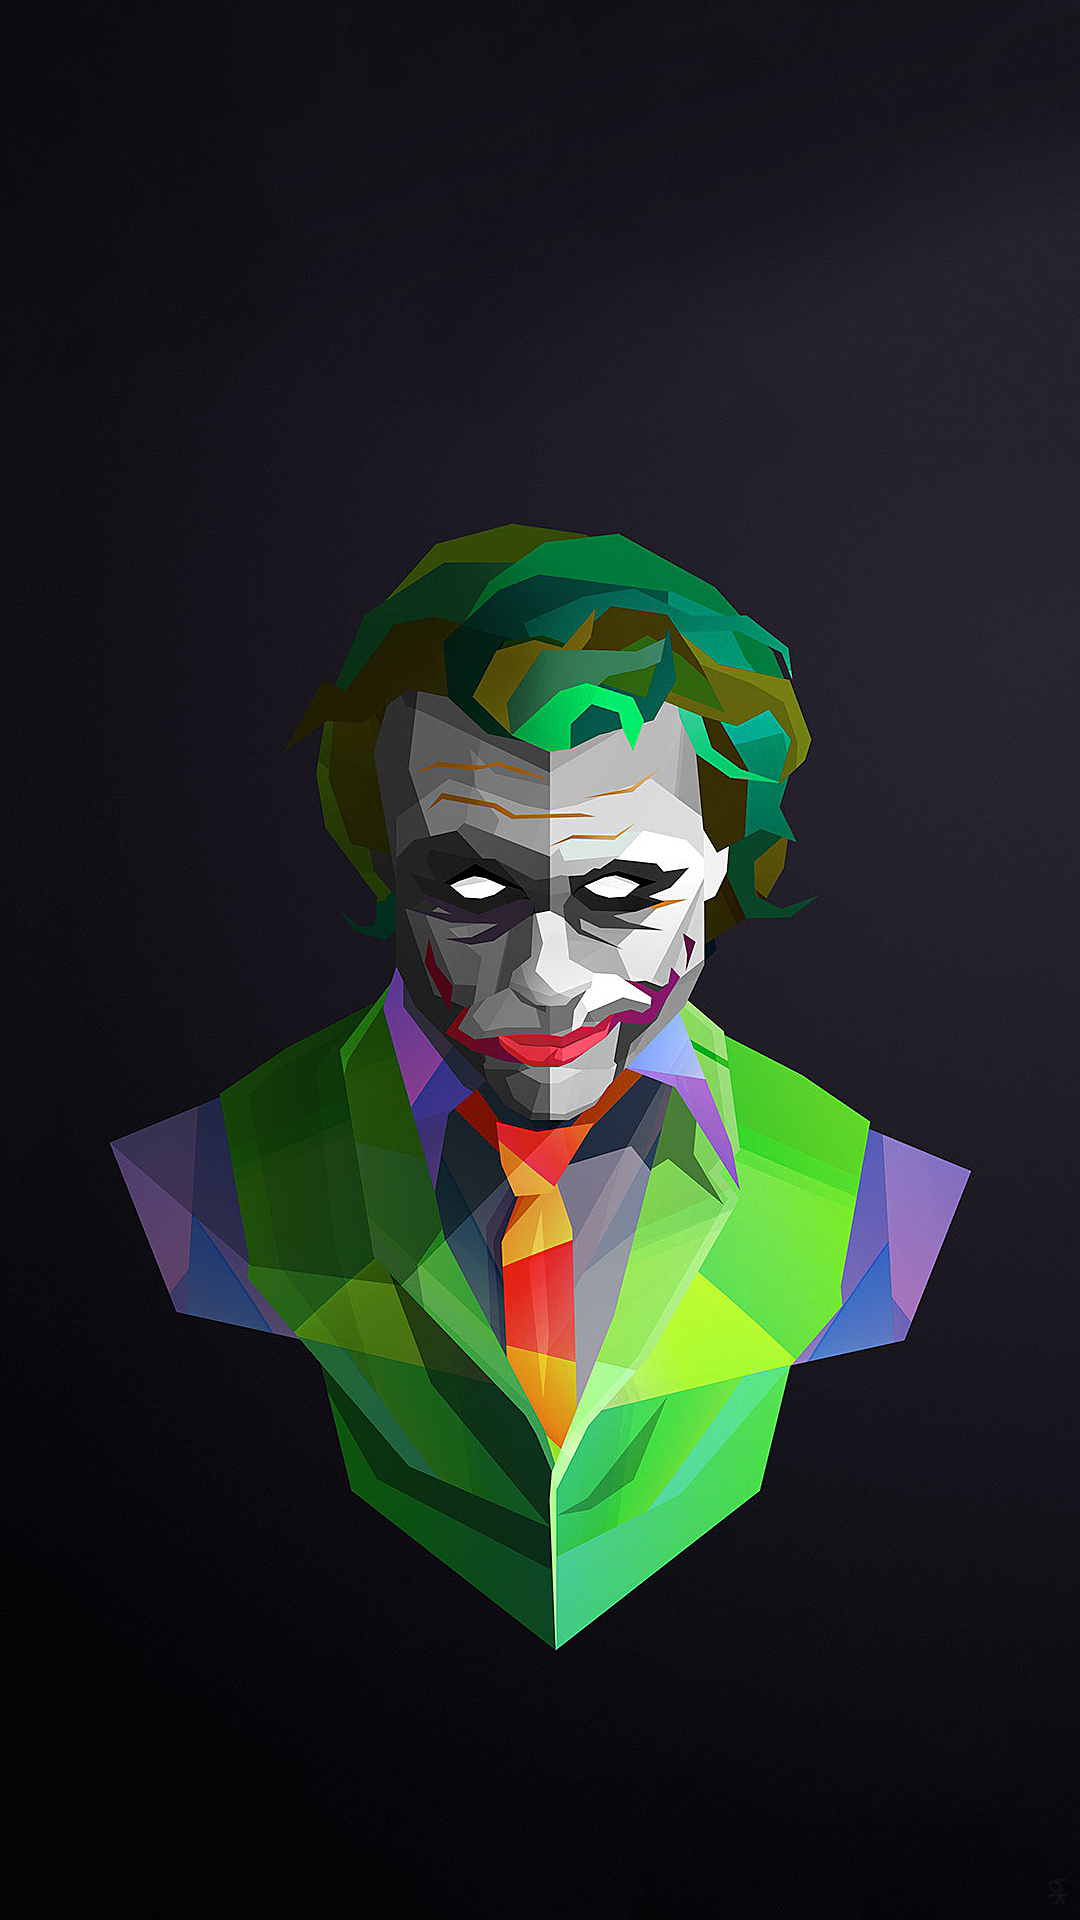 Joker Wallpaper HD Iphone